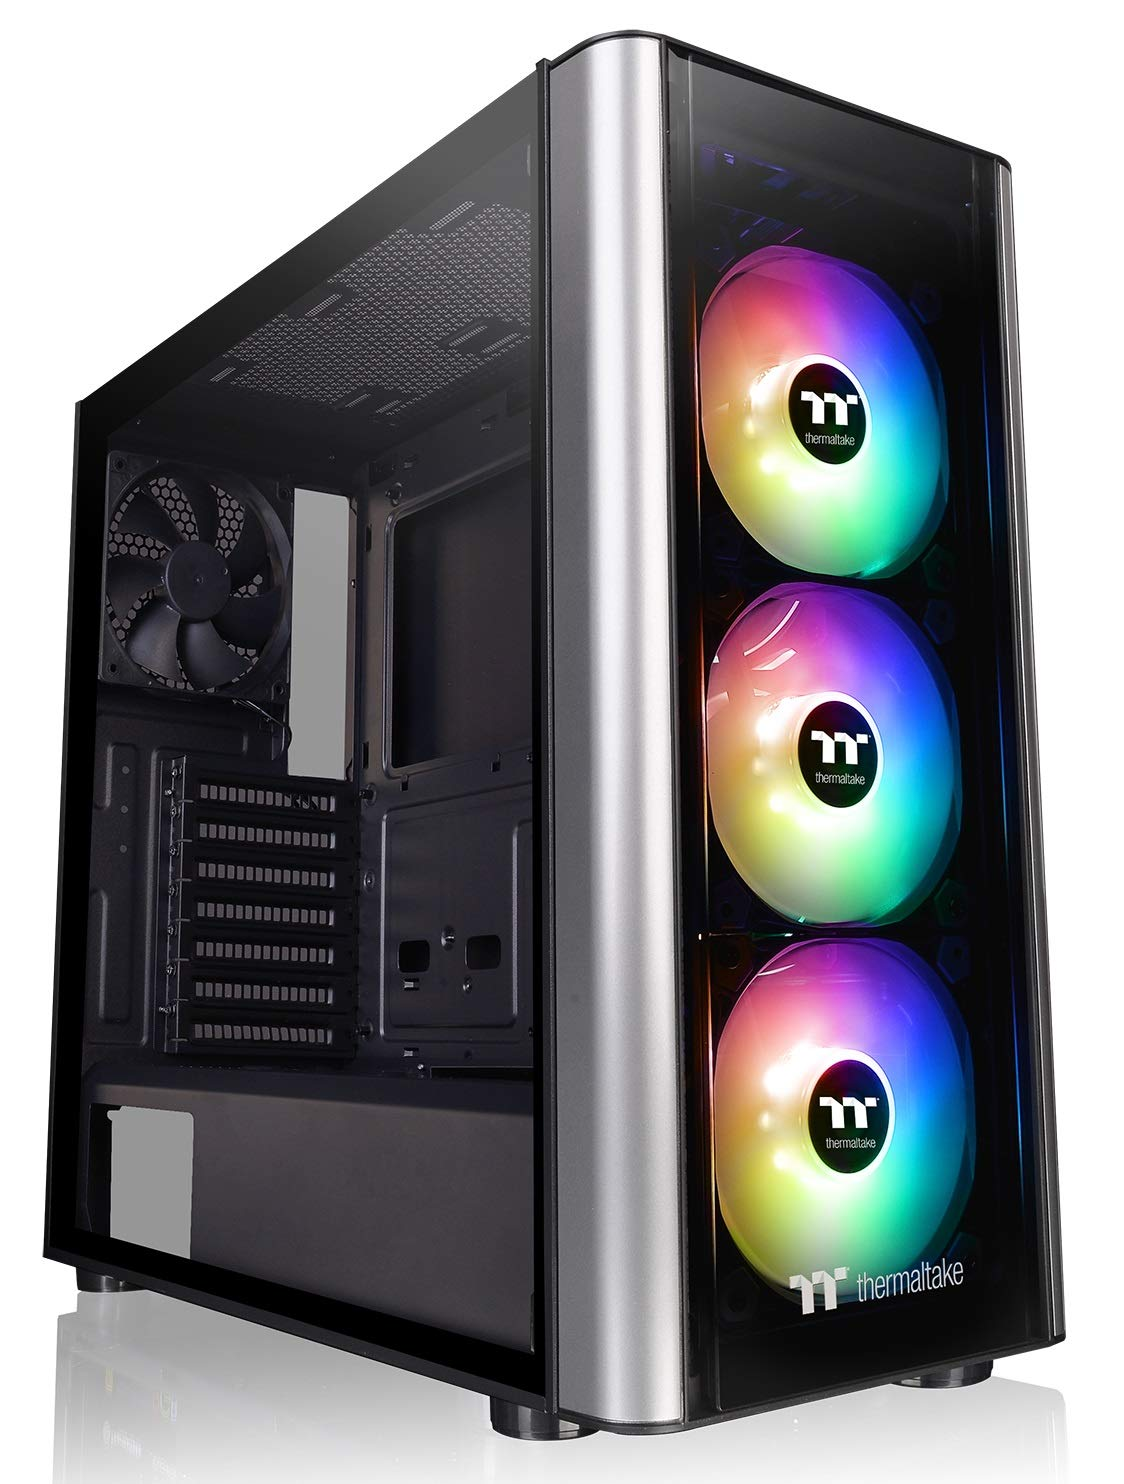 Thermaltake Level 20 MT Motherboard Sync ARGB ATX Mid Tower Gaming Computer Case with 3 120mm ARGB 5V Motherboard Sync RGB Fans +1 120mm Rear Fan Pre-Installed CA-1M7-00M1WN-00, Black by Thermaltake